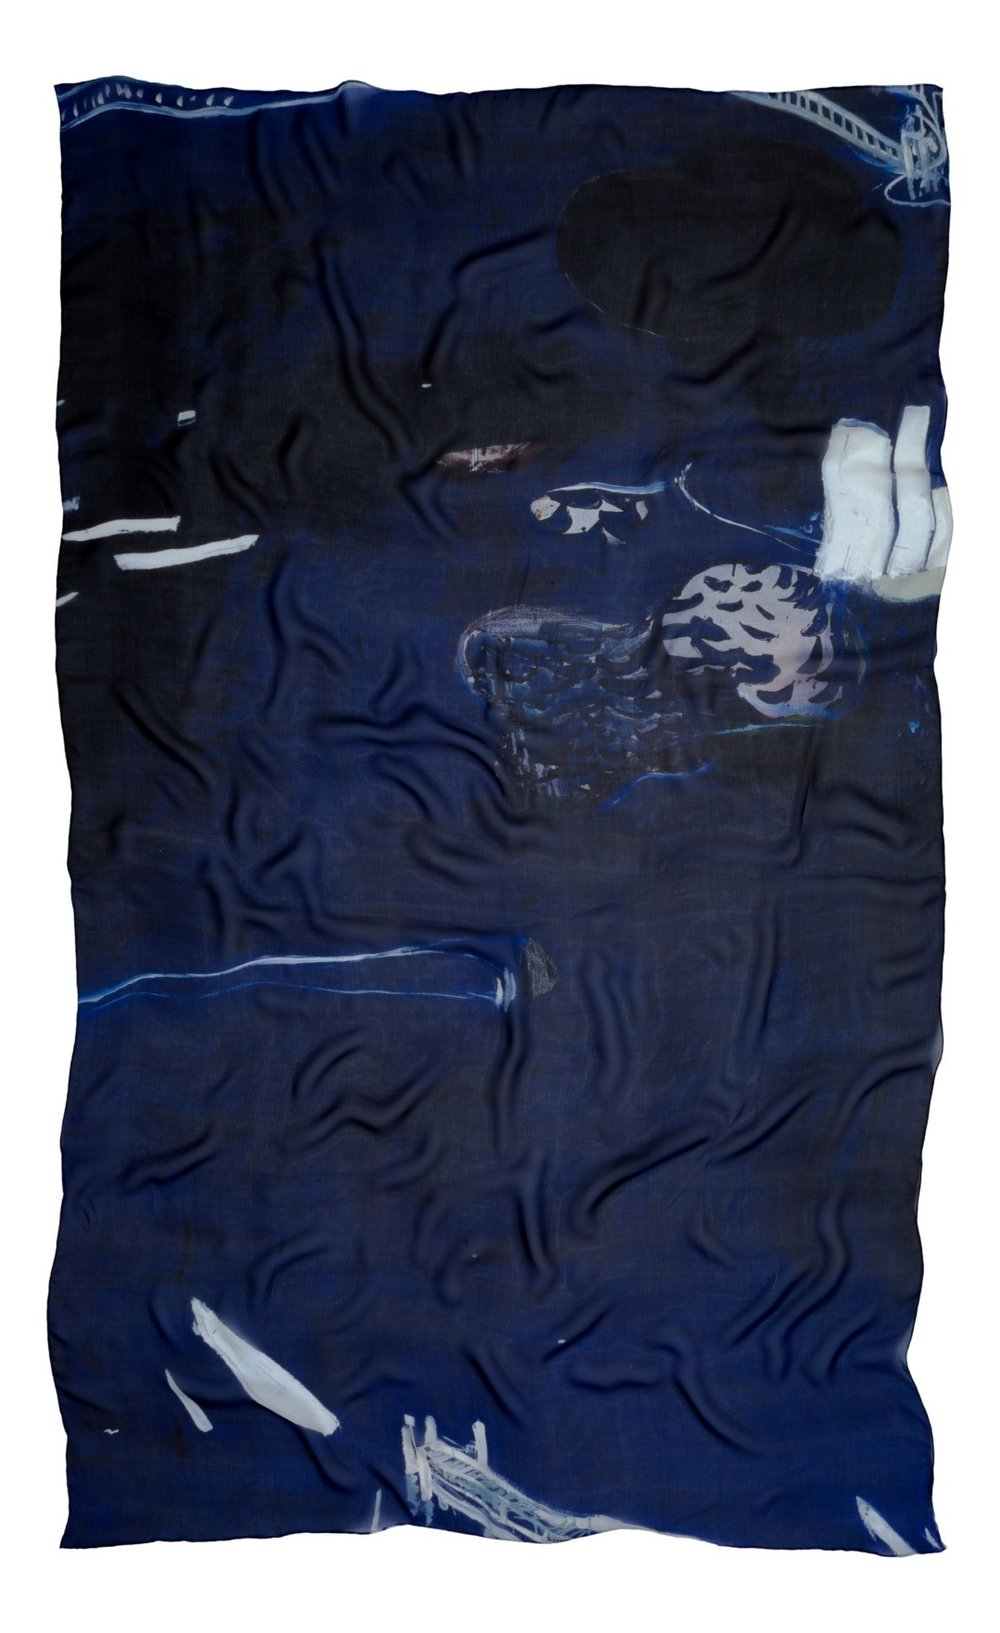 Brett Whiteley silk chiffon scarf by SKARFE for the NGV.